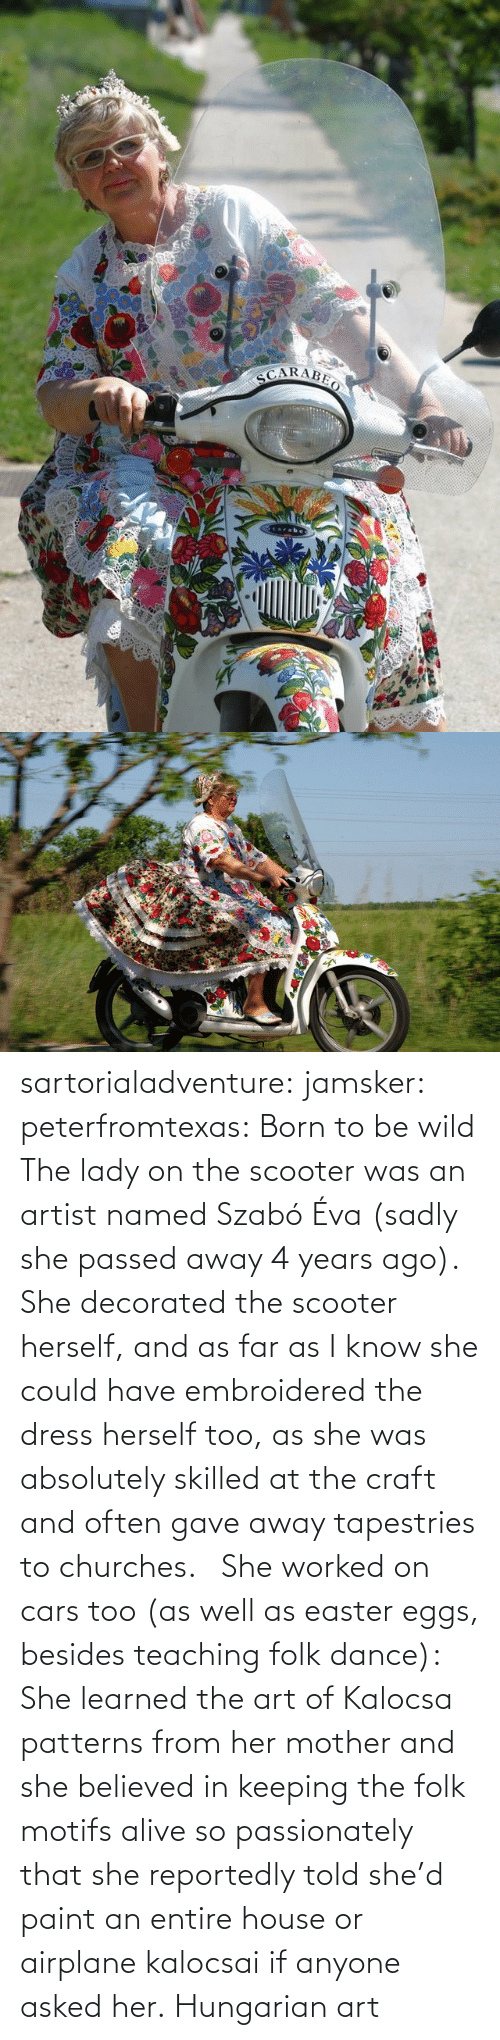 Told: sartorialadventure: jamsker:  peterfromtexas: Born to be wild The lady on the scooter was an artist named Szabó Éva (sadly she passed away 4 years ago). She decorated the scooter herself, and as far as I know she could have embroidered the dress herself too, as she was absolutely skilled at the craft and often gave away tapestries to churches.   She worked on cars too (as well as easter eggs, besides teaching folk dance): She learned the art of Kalocsa patterns from her mother and she believed in keeping the folk motifs alive so passionately that she reportedly told she'd paint an entire house or airplane kalocsai if anyone asked her.  Hungarian art